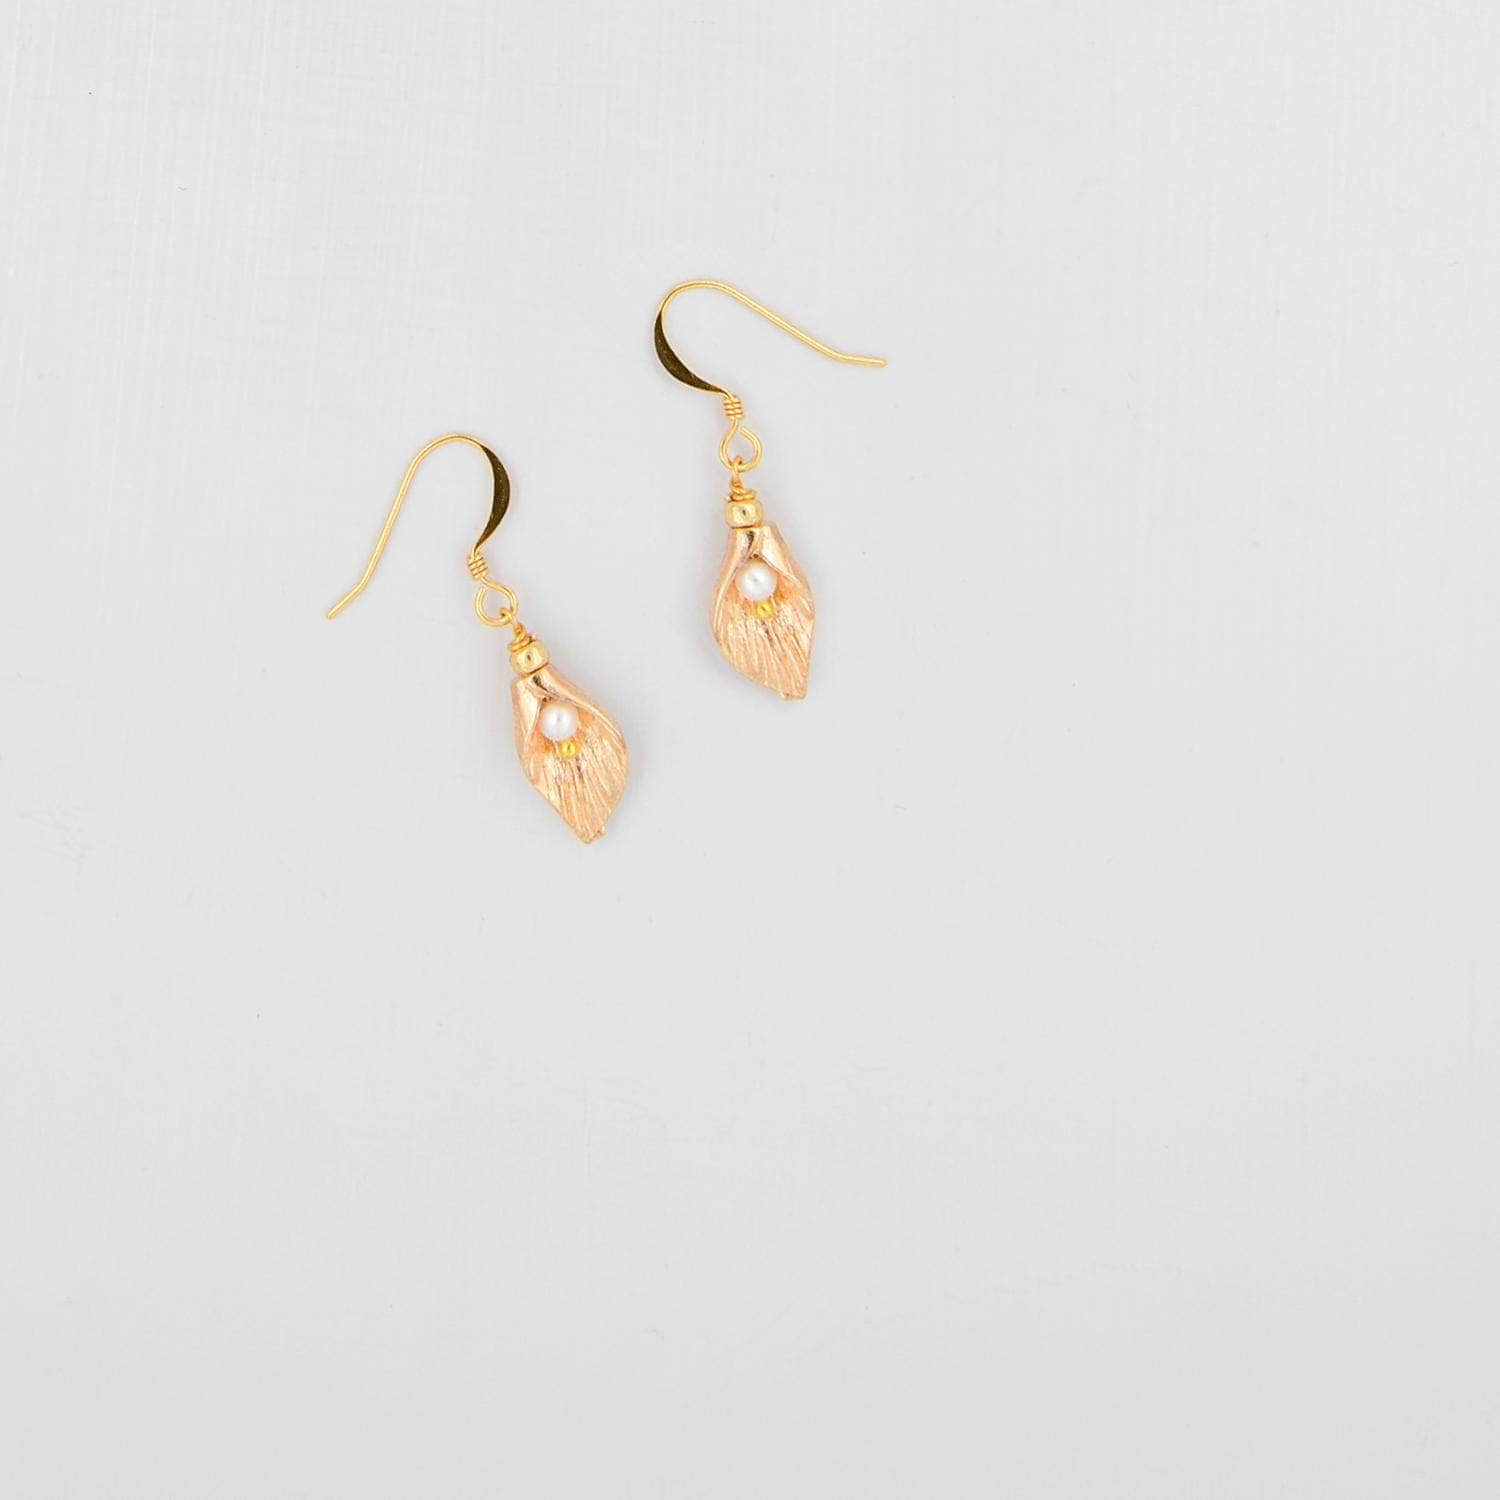 Wedding Earring Gold Gold leaf and freshwater pearl earrings for wedding - 'Nova'